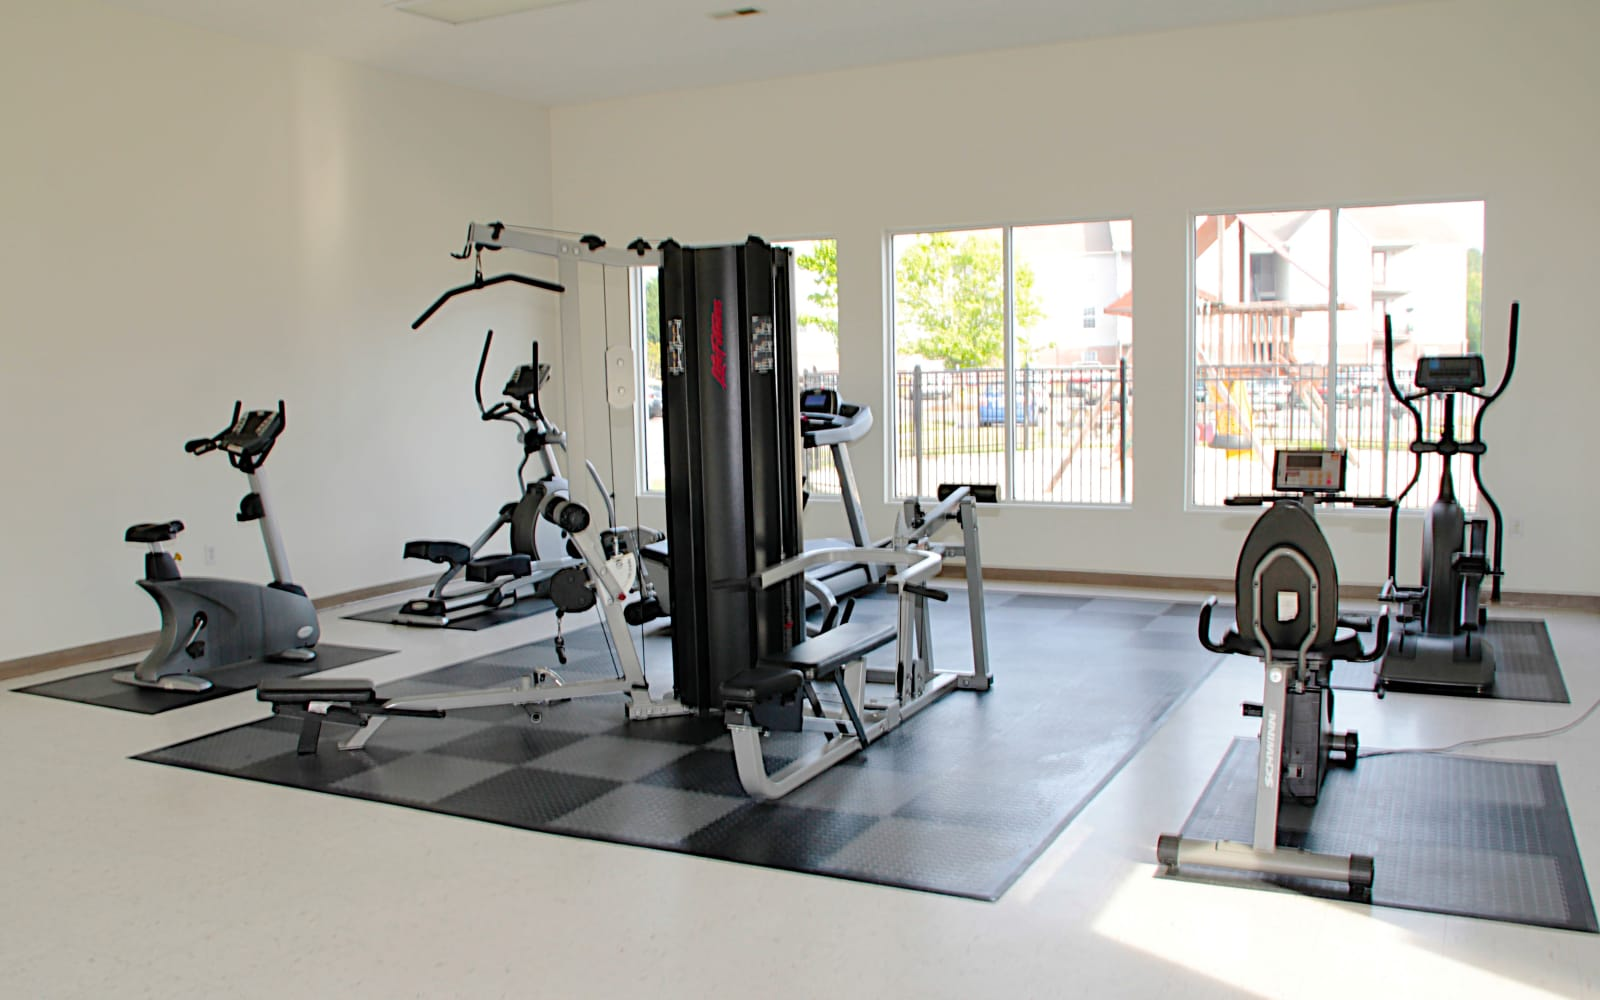 Brookstone Apartments in Fayetteville, North Carolina, offers a fitness center